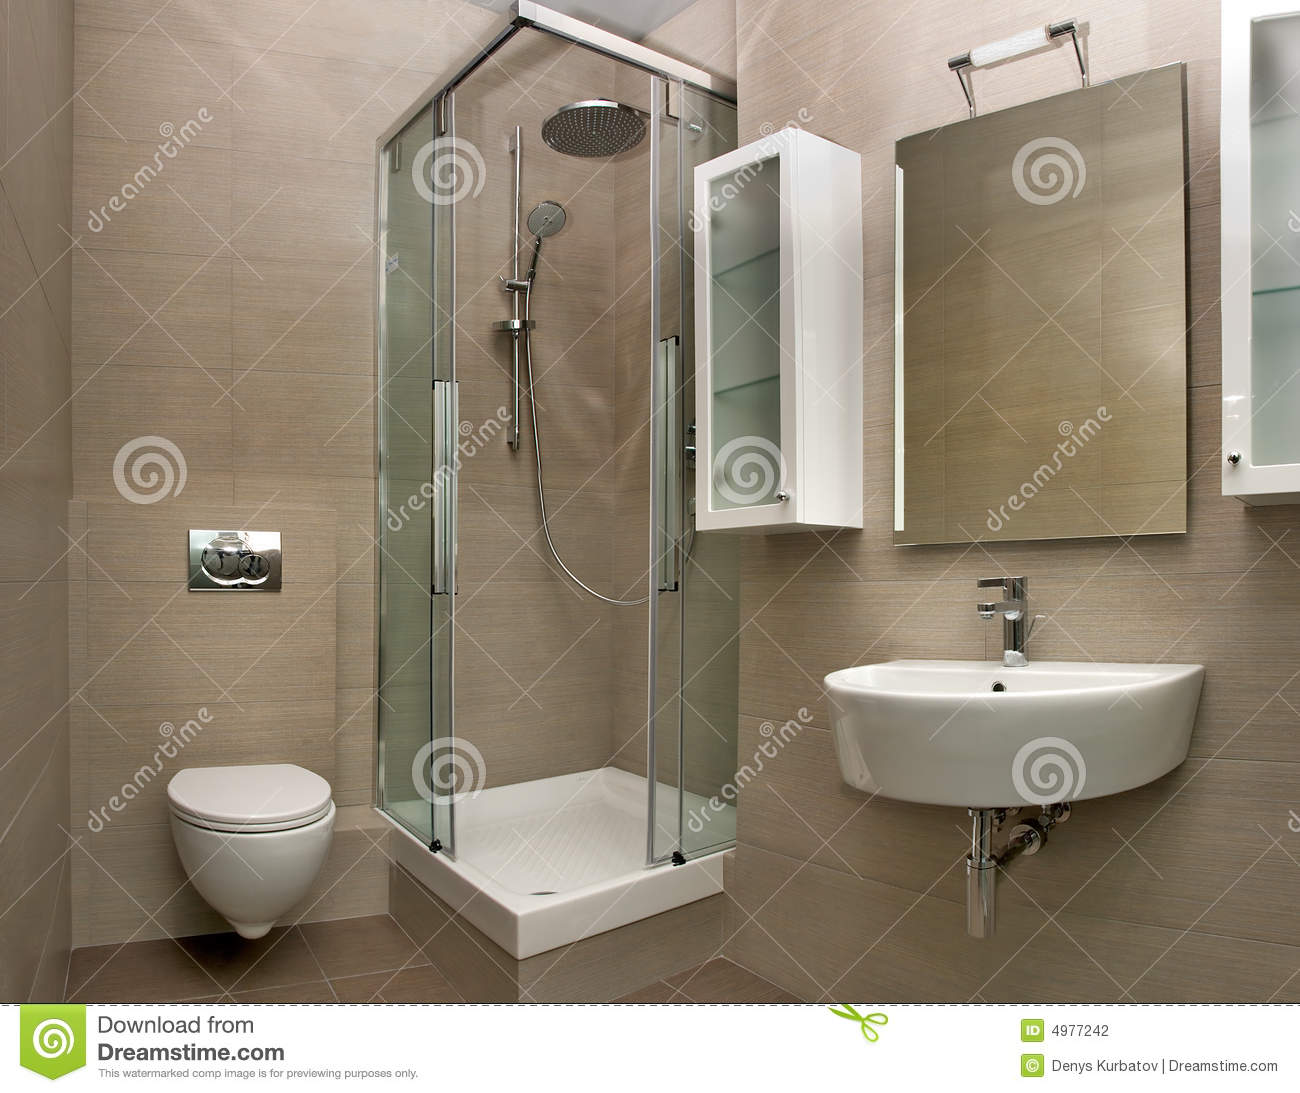 Small bathroom with shower design - Bathroom Interior Stock Photography Image 4977242